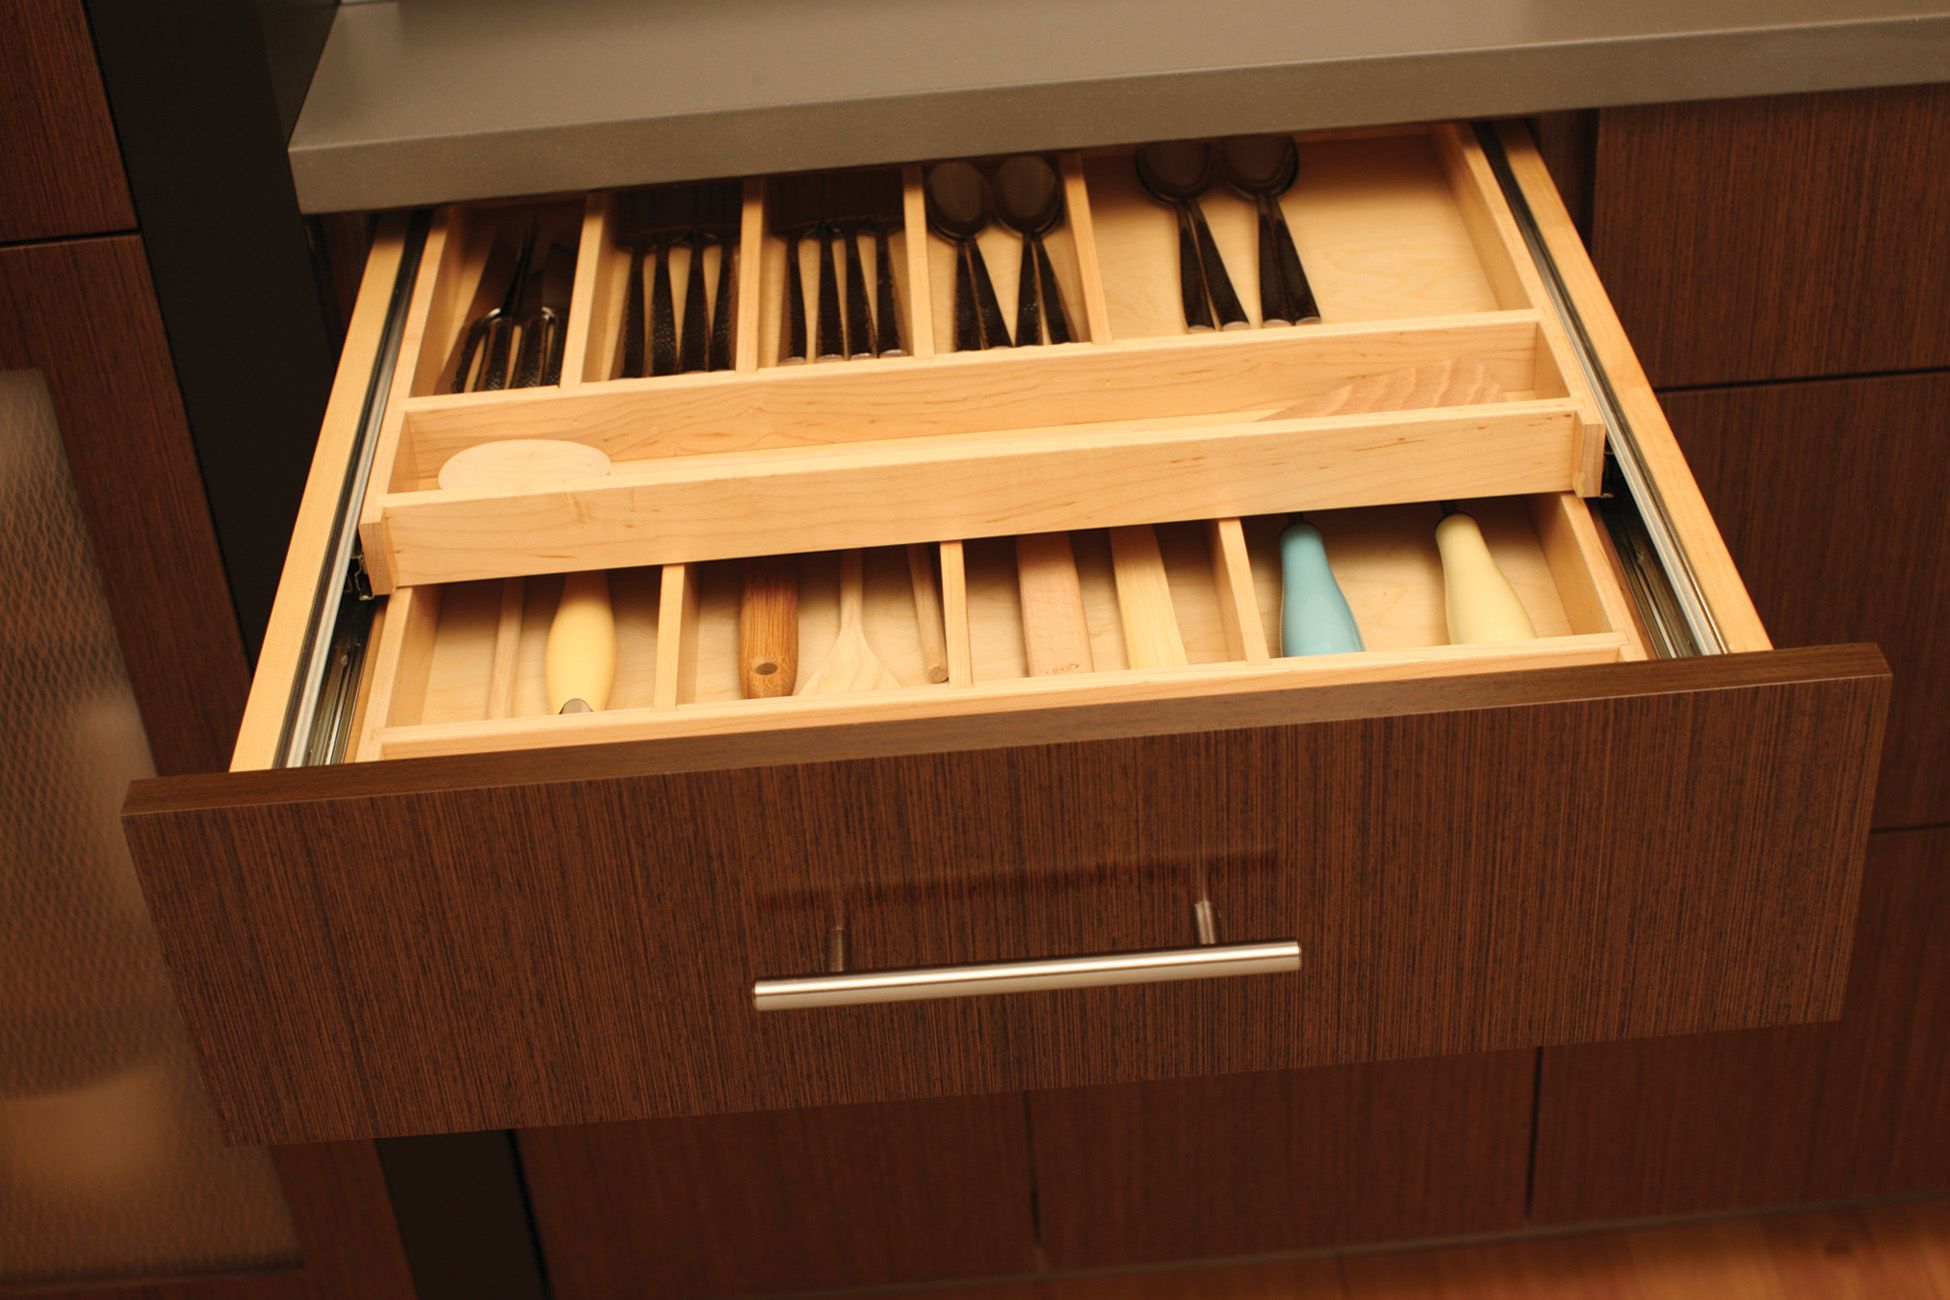 Maximize Drawer Space With A Two Tier Wood Cutlery Tray By Dura Supreme To Organize Silverware And Utens Loft Storage Kitchen And Bath Design Storage Solutions